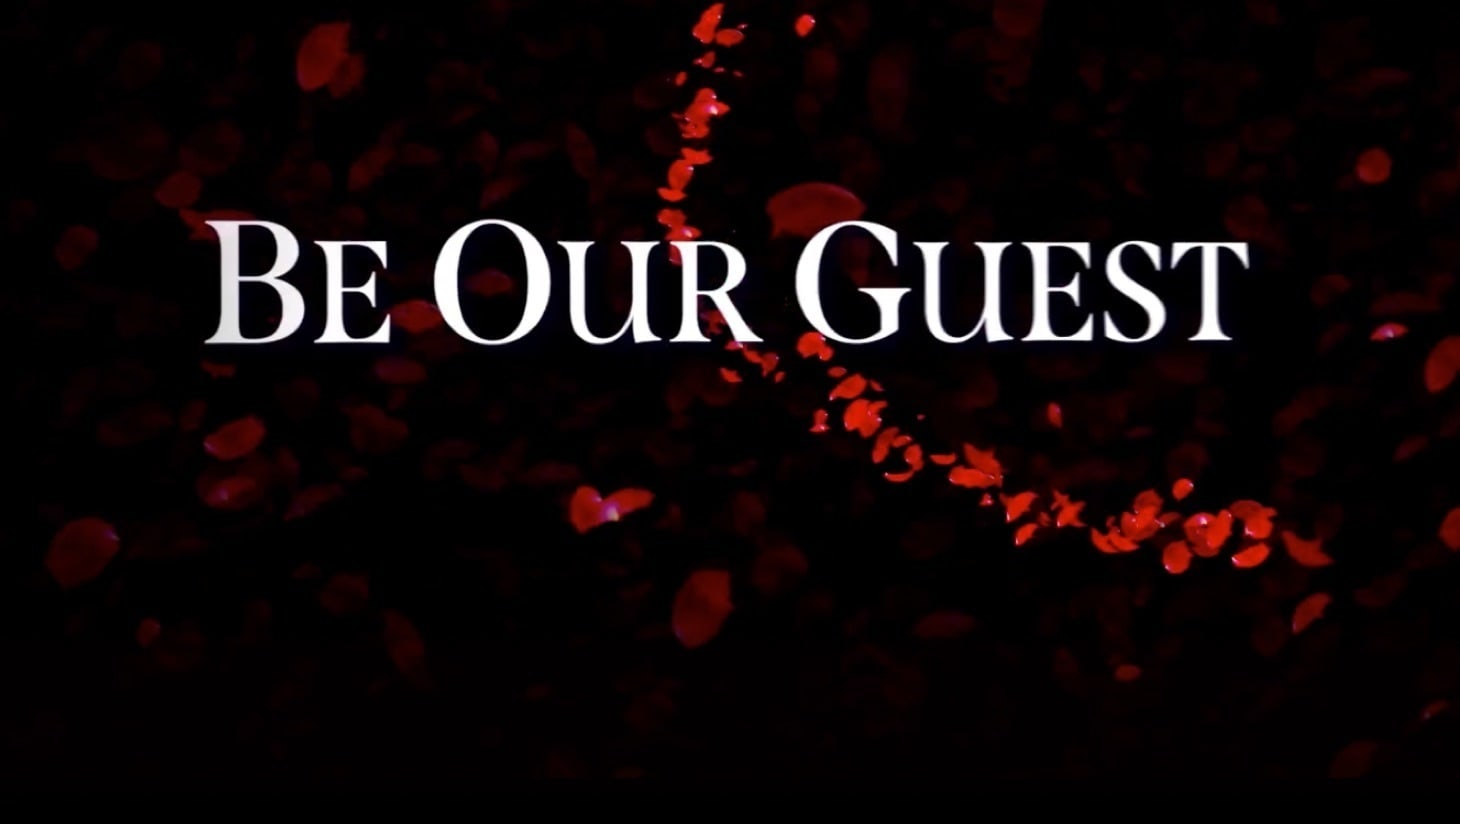 """""""Be Our Guest"""" written on a dark background with rose petals"""